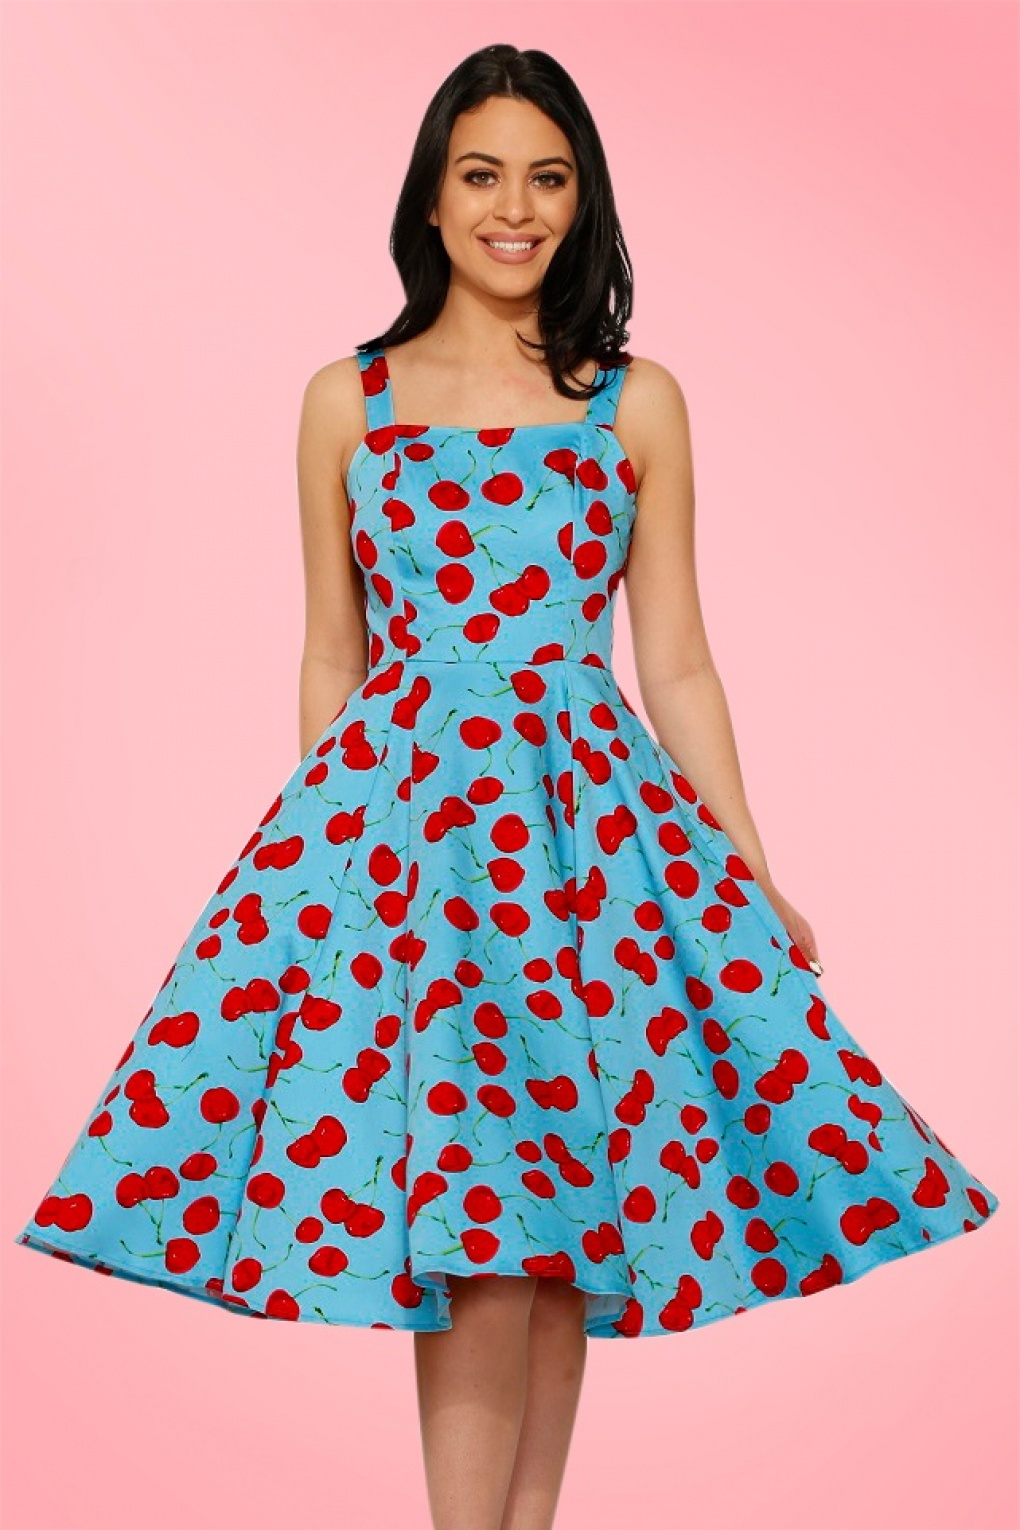 1950s Polka Dot Dresses 50s Martina Cherry Sun Swing Dress in Aqua Blue £42.42 AT vintagedancer.com